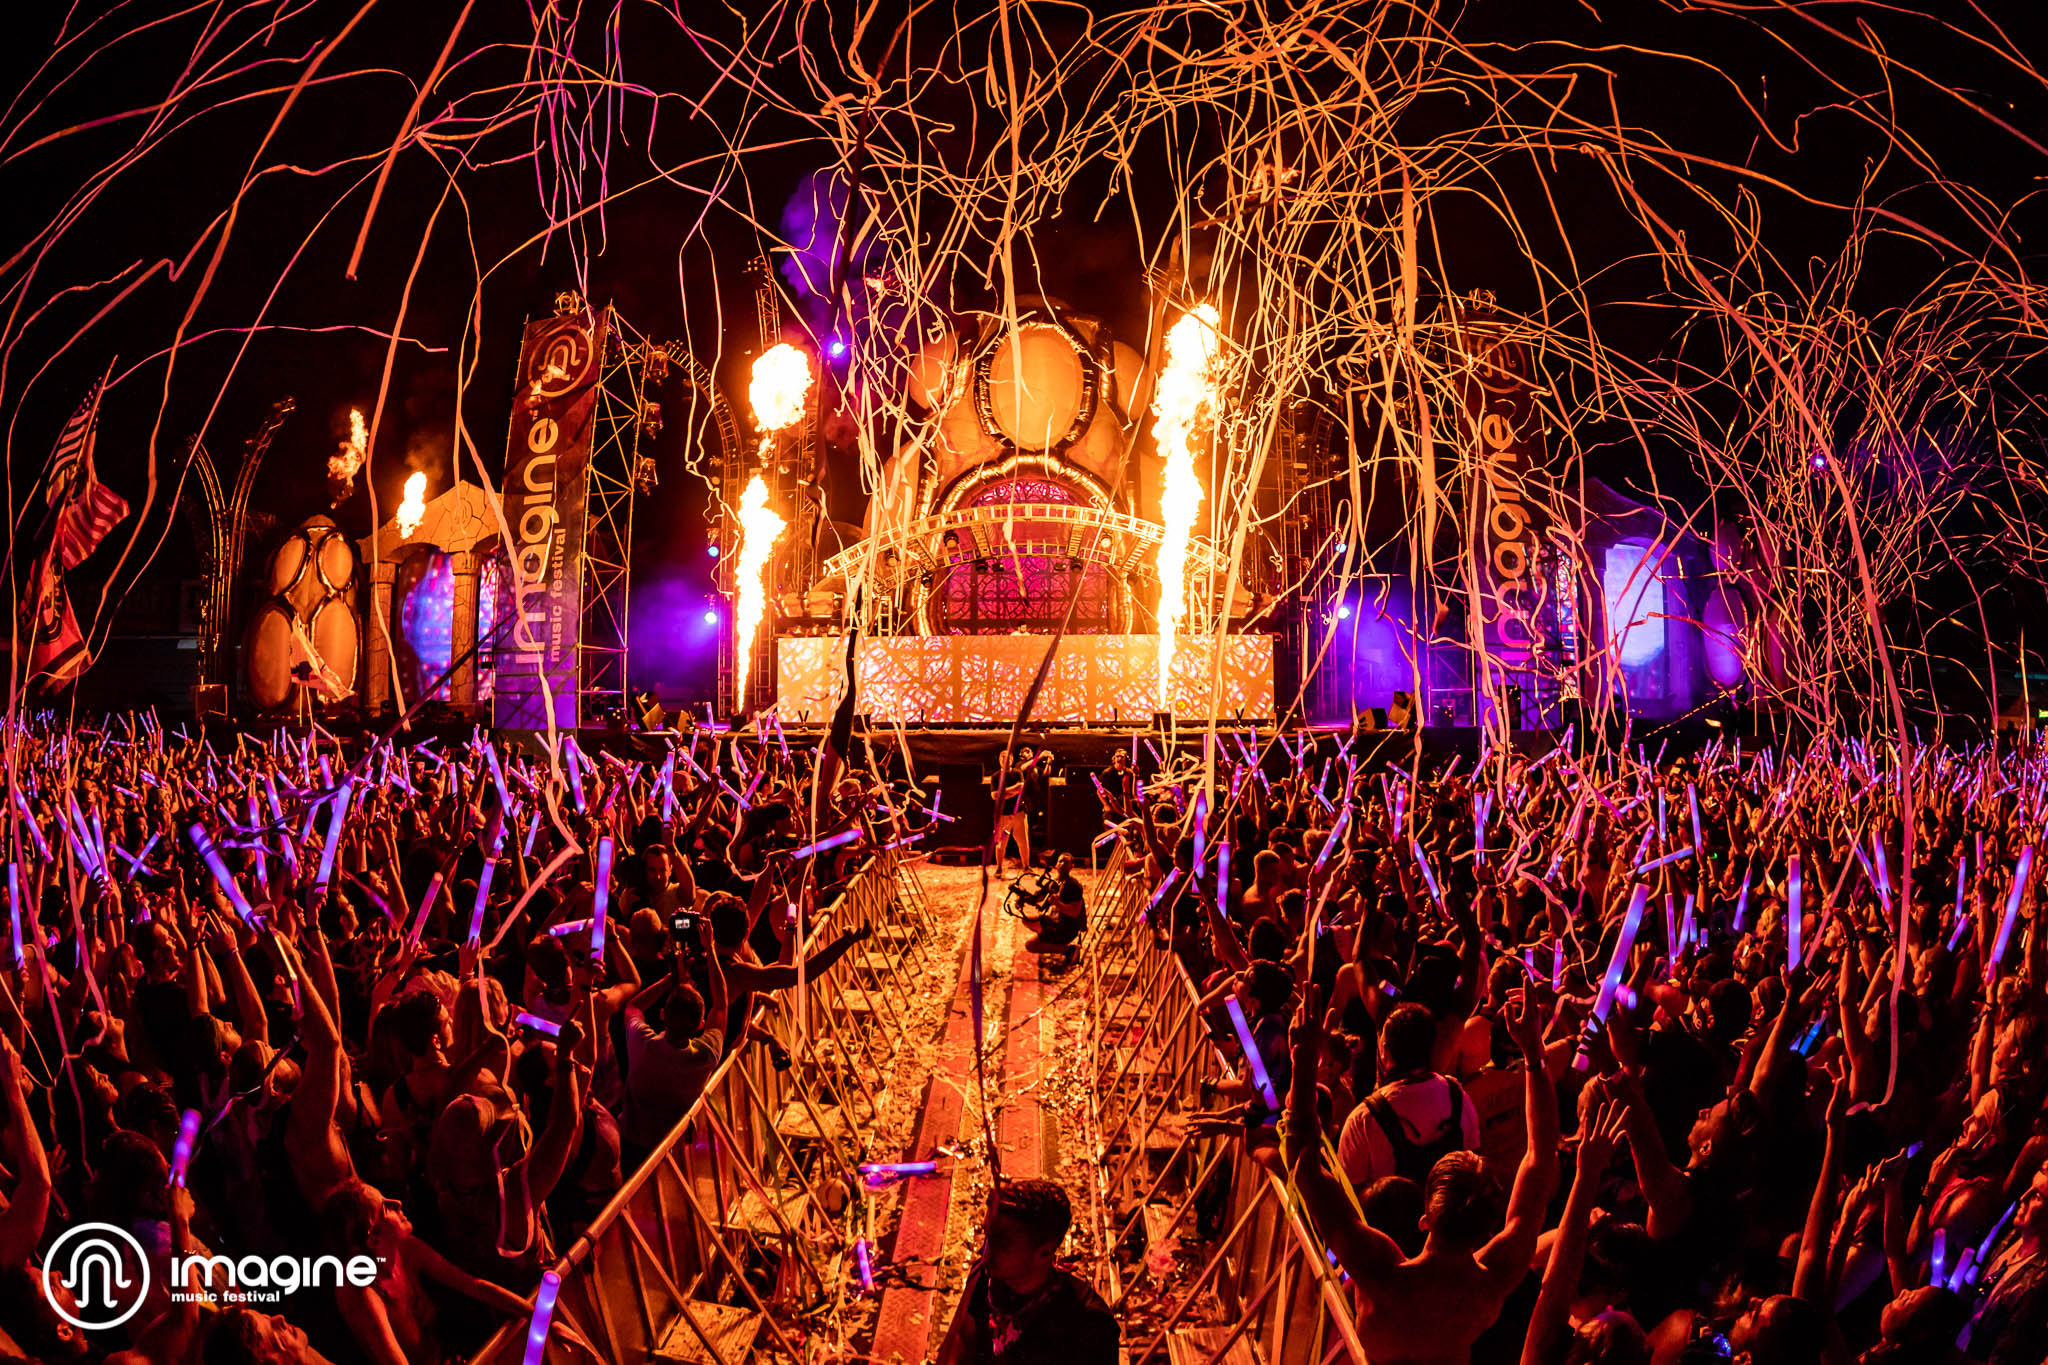 Buy Tickets to Imagine Festival 2021 in Chattahoochee Hills on Sep 16, 2021 - Sep 19,2021